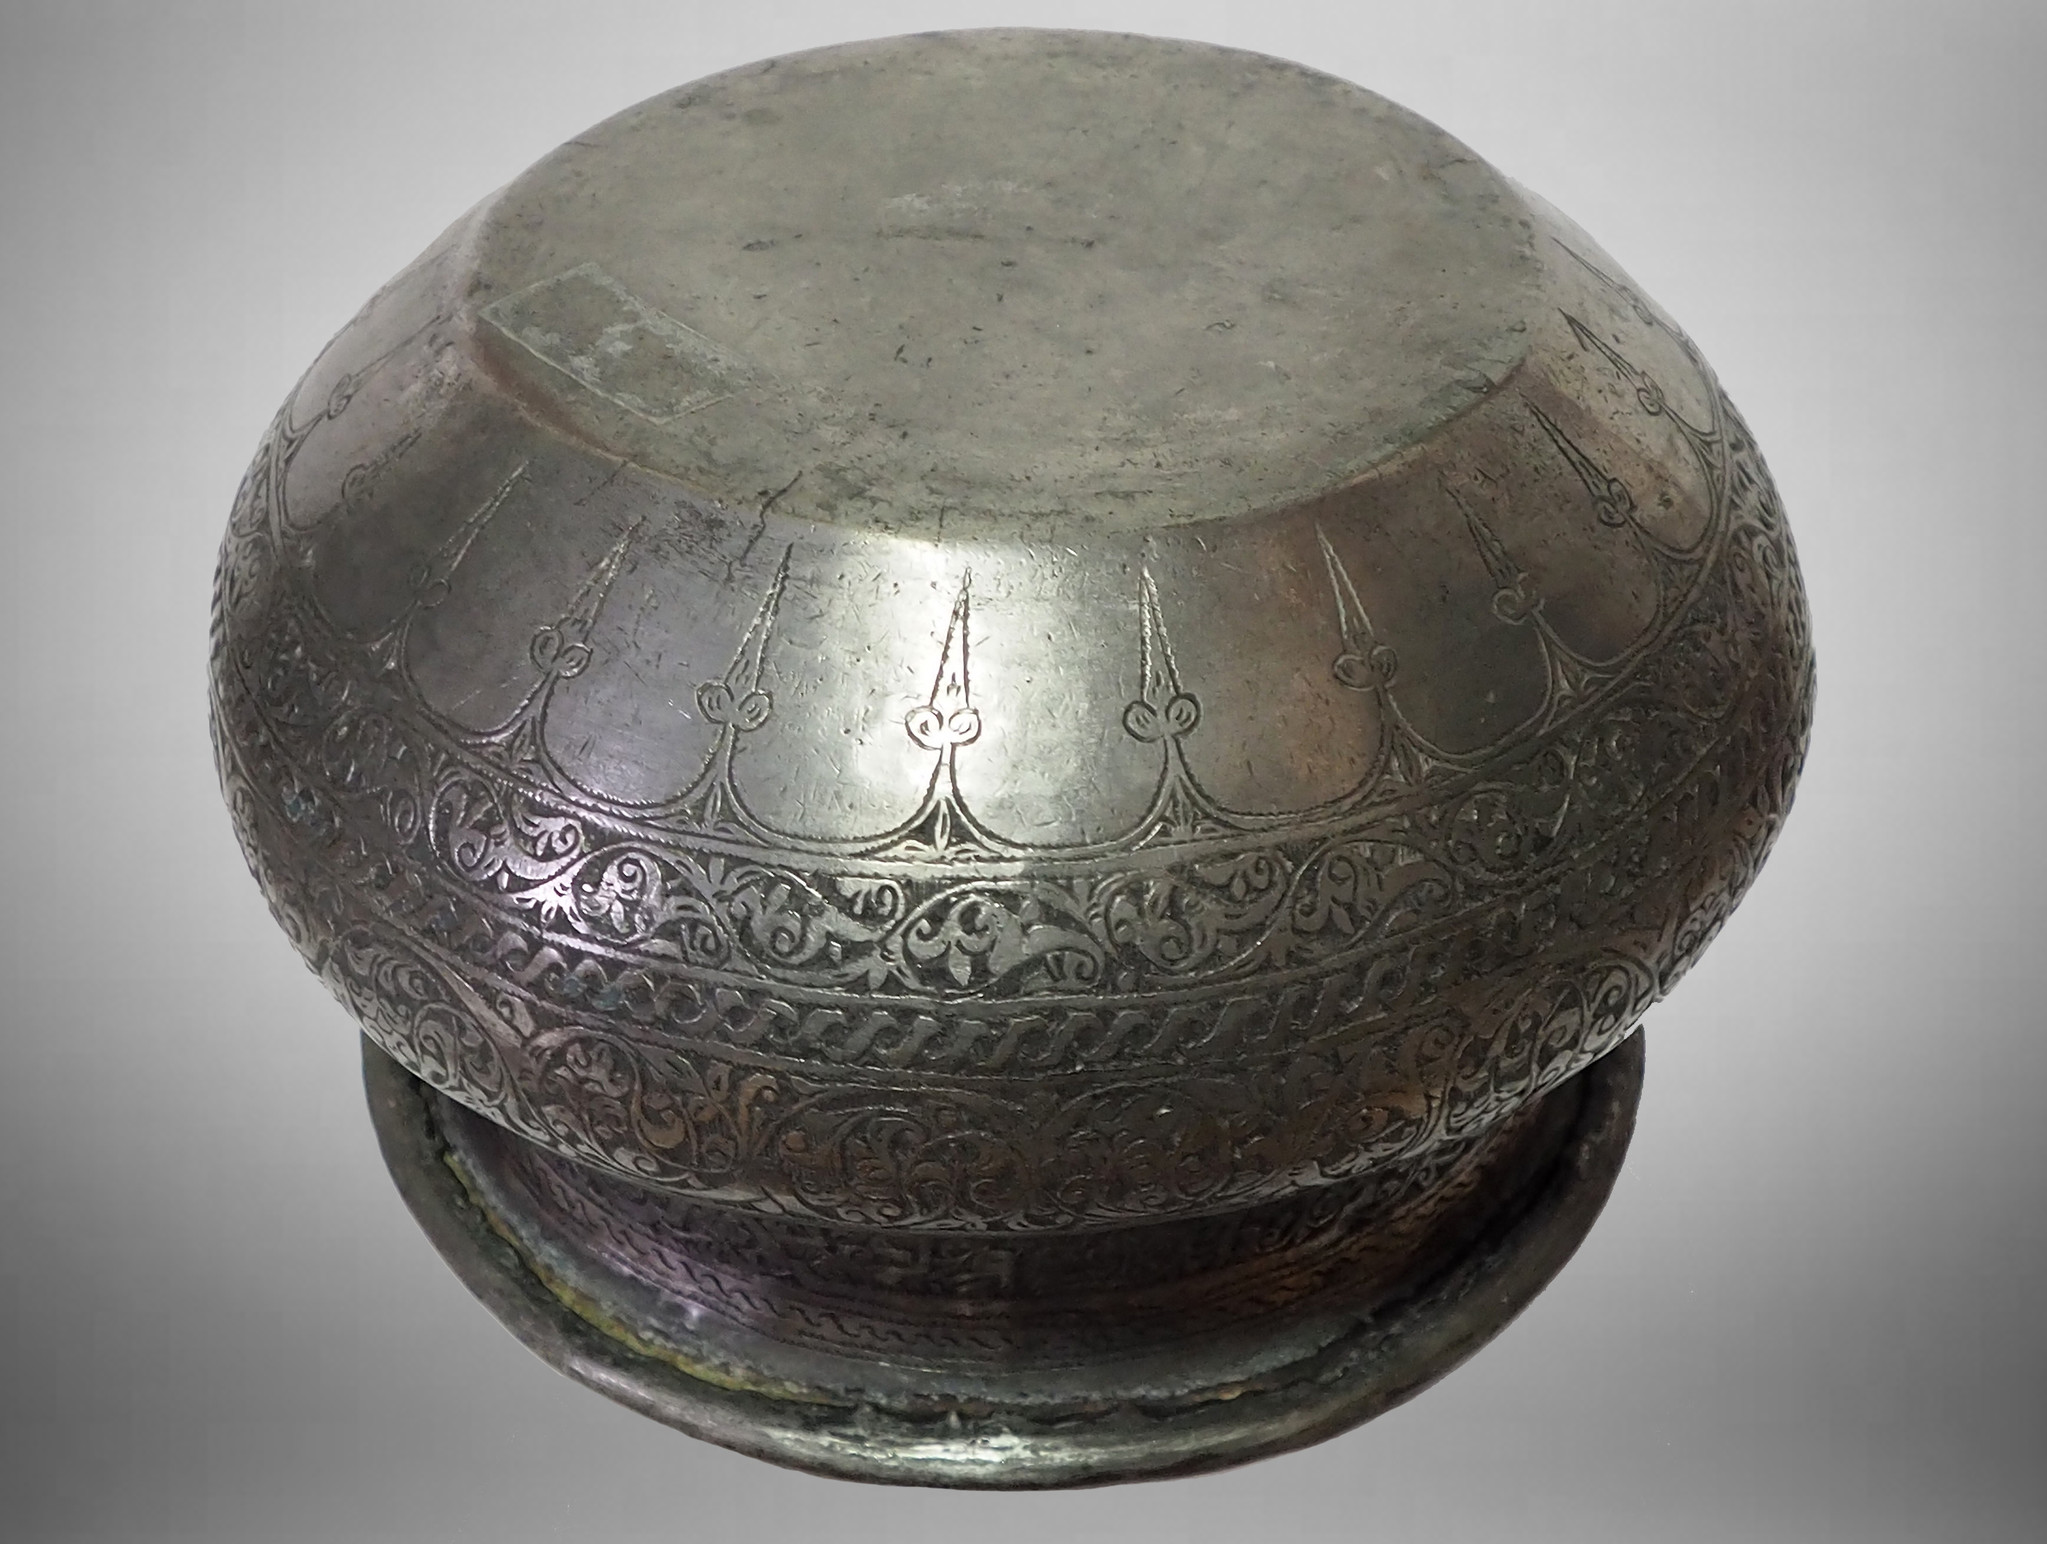 Antique Engraved Large islamic Tinned Copper  Bowl, 18/19th C. from Afghanistan tas No:21A